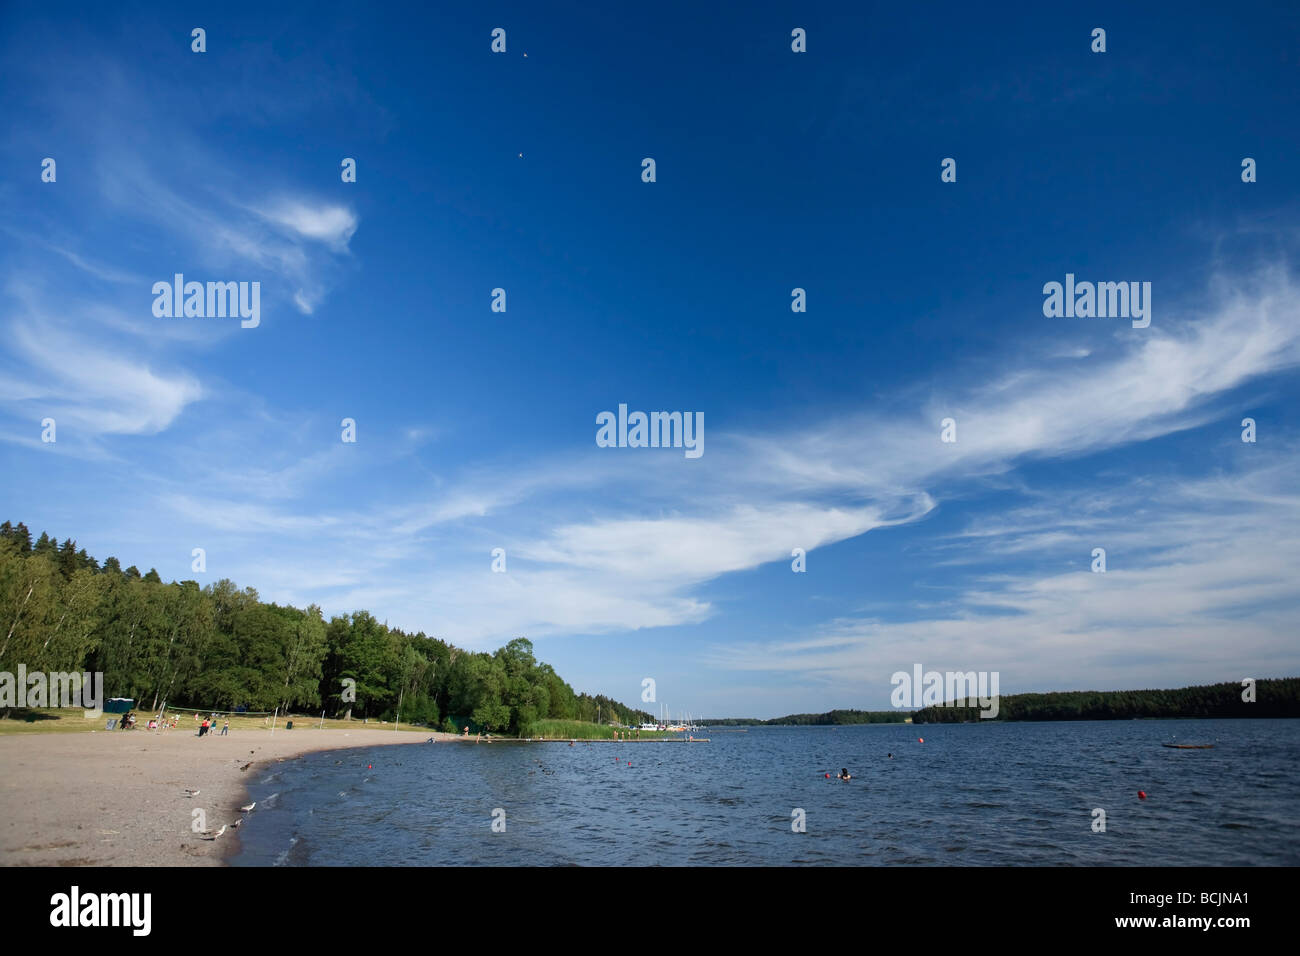 Hasselby Strand Beach, Stockholm Archipelago, Stockholm, Sweden - Stock Image